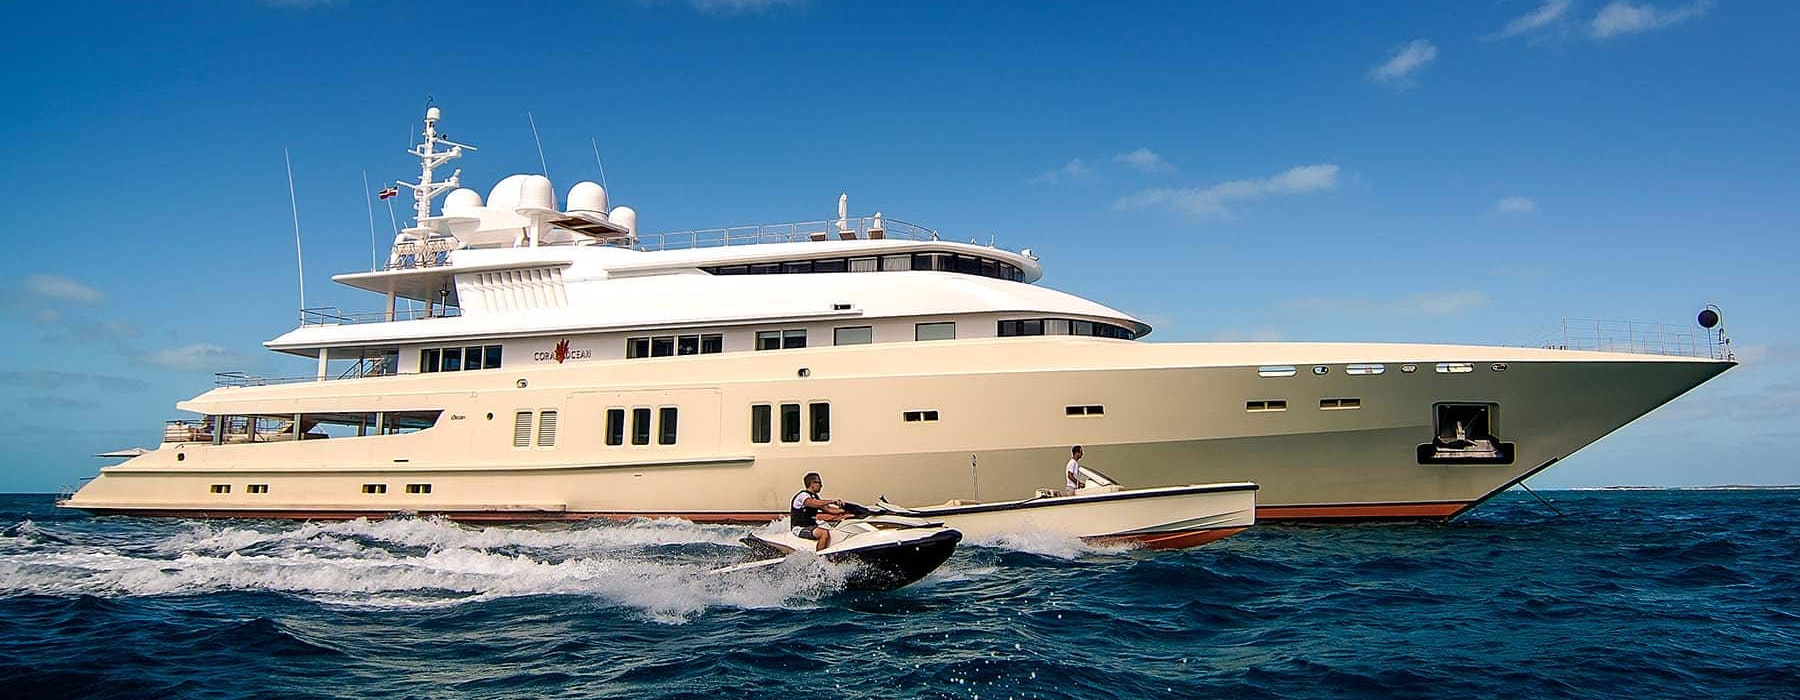 Luxury megayacht CORAL OCEAN for sale